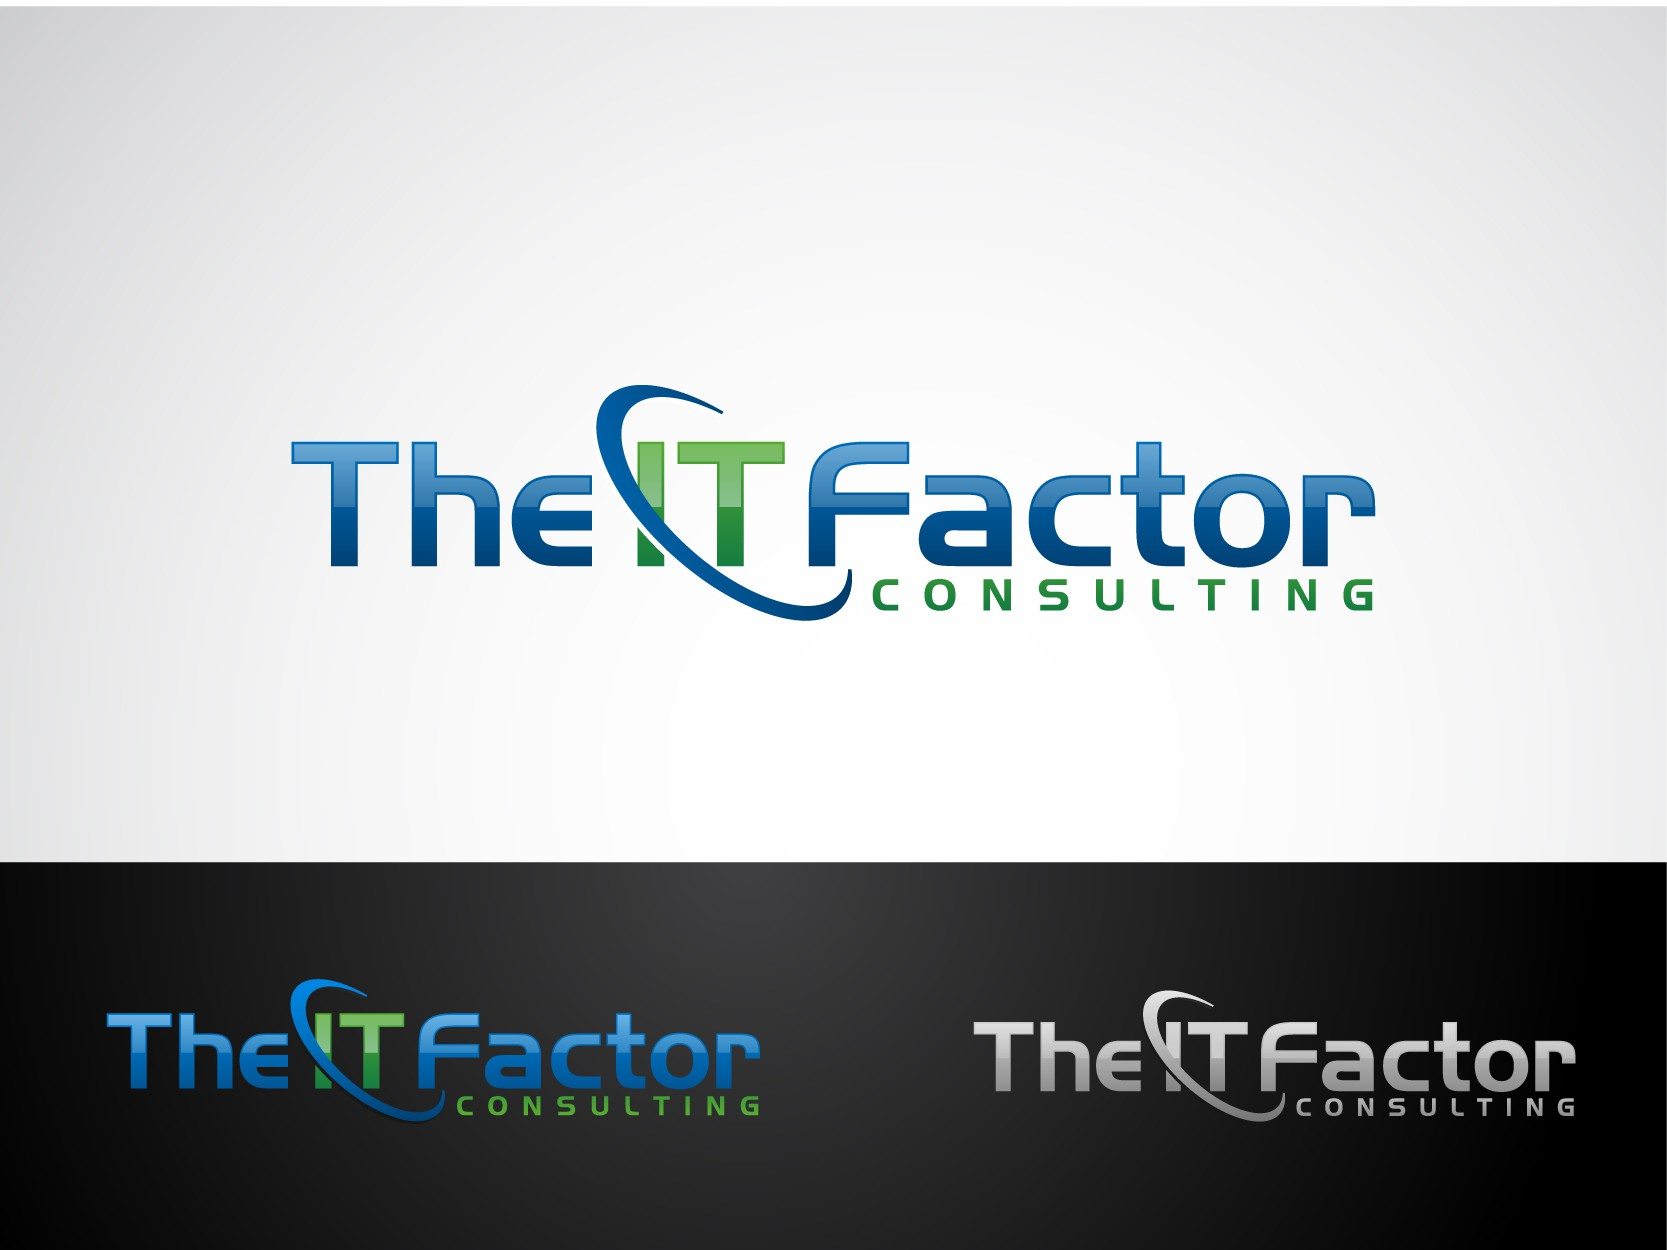 The IT Factor Consulting needs a new logo